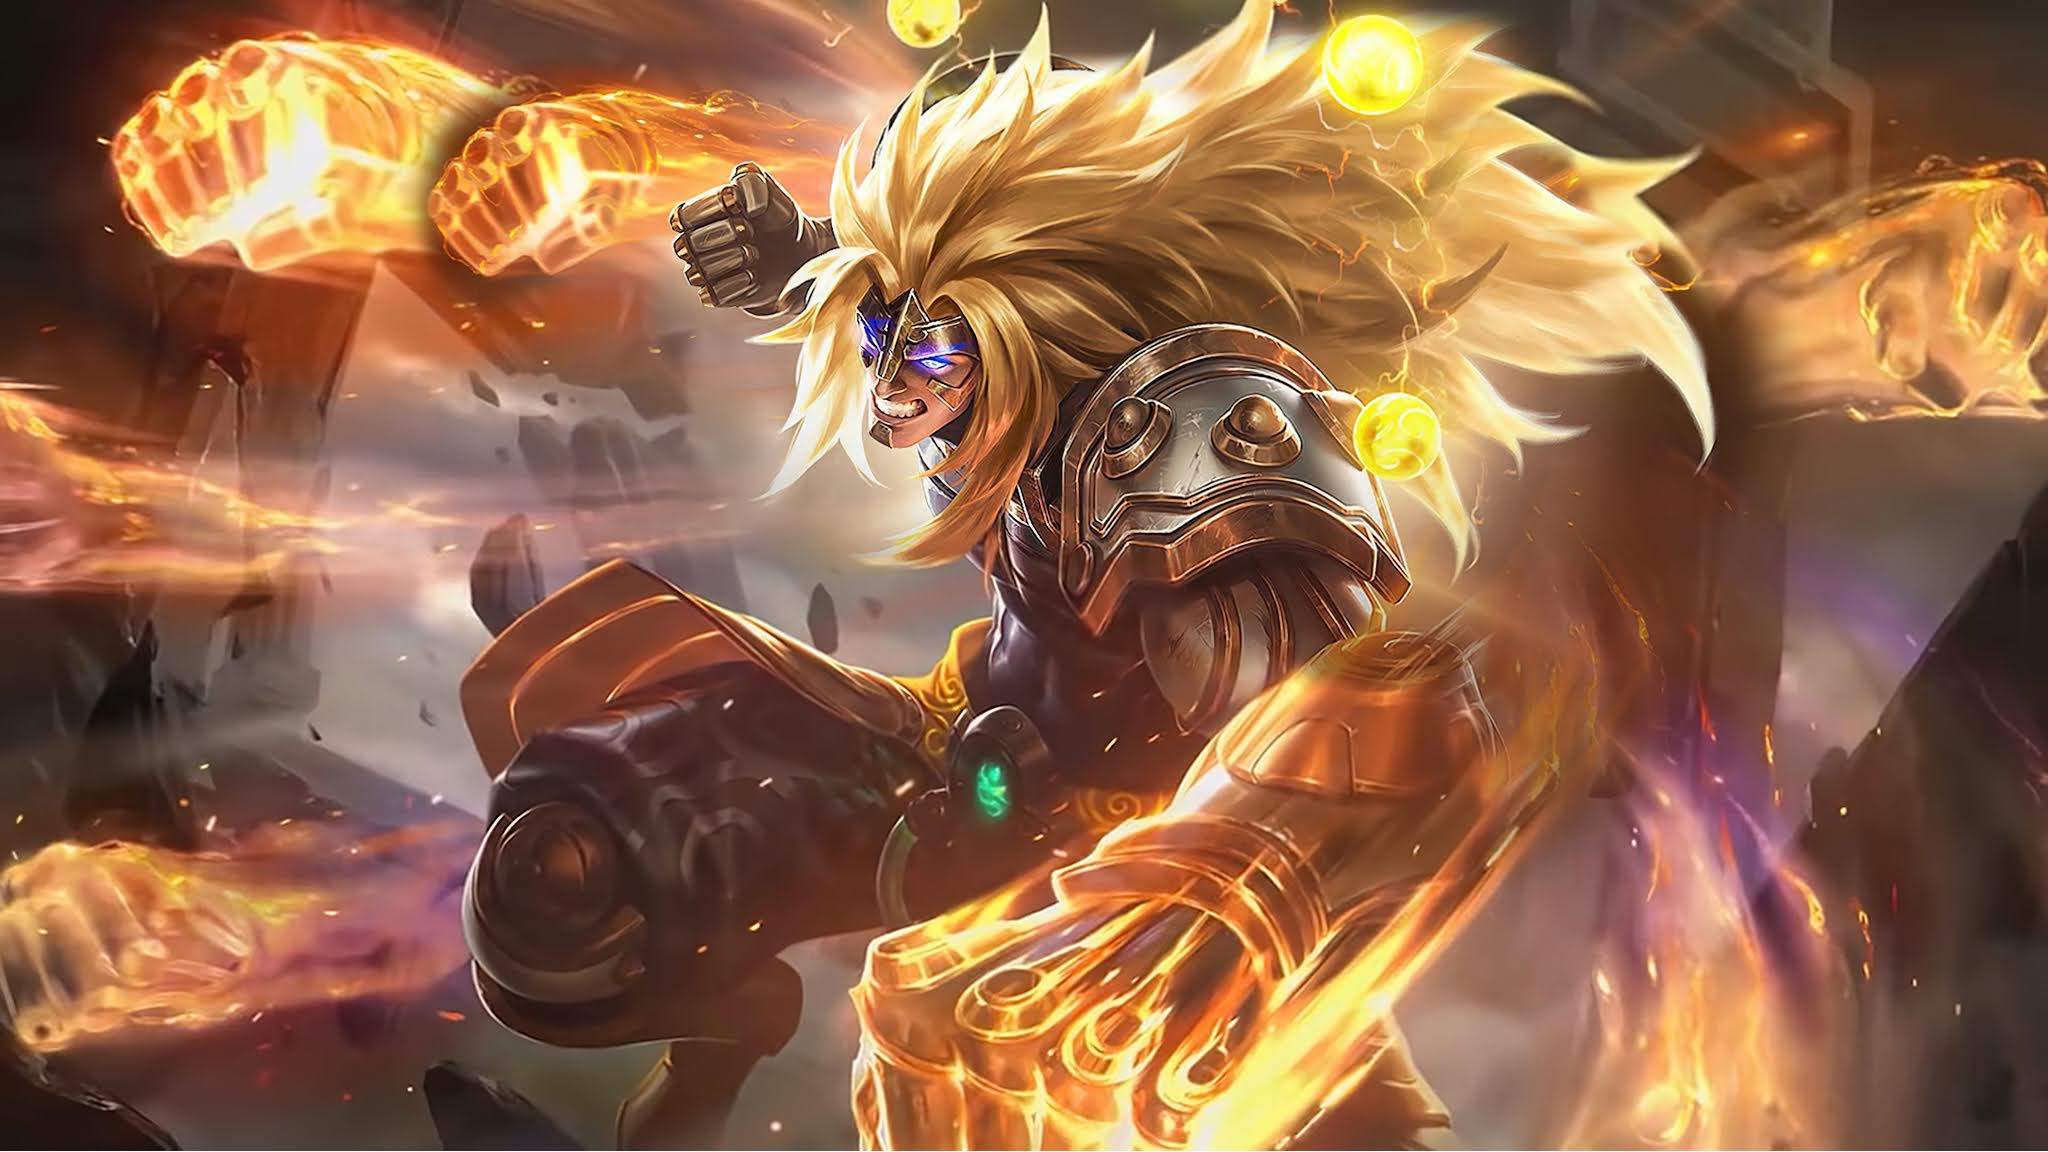 Mobile Legends Bang Bang Wallpaper Gallery Find best armor wallpaper and ideas by device, resolution, and quality (hd, 4k) from a curated website list. mobile legends bang bang wallpaper gallery